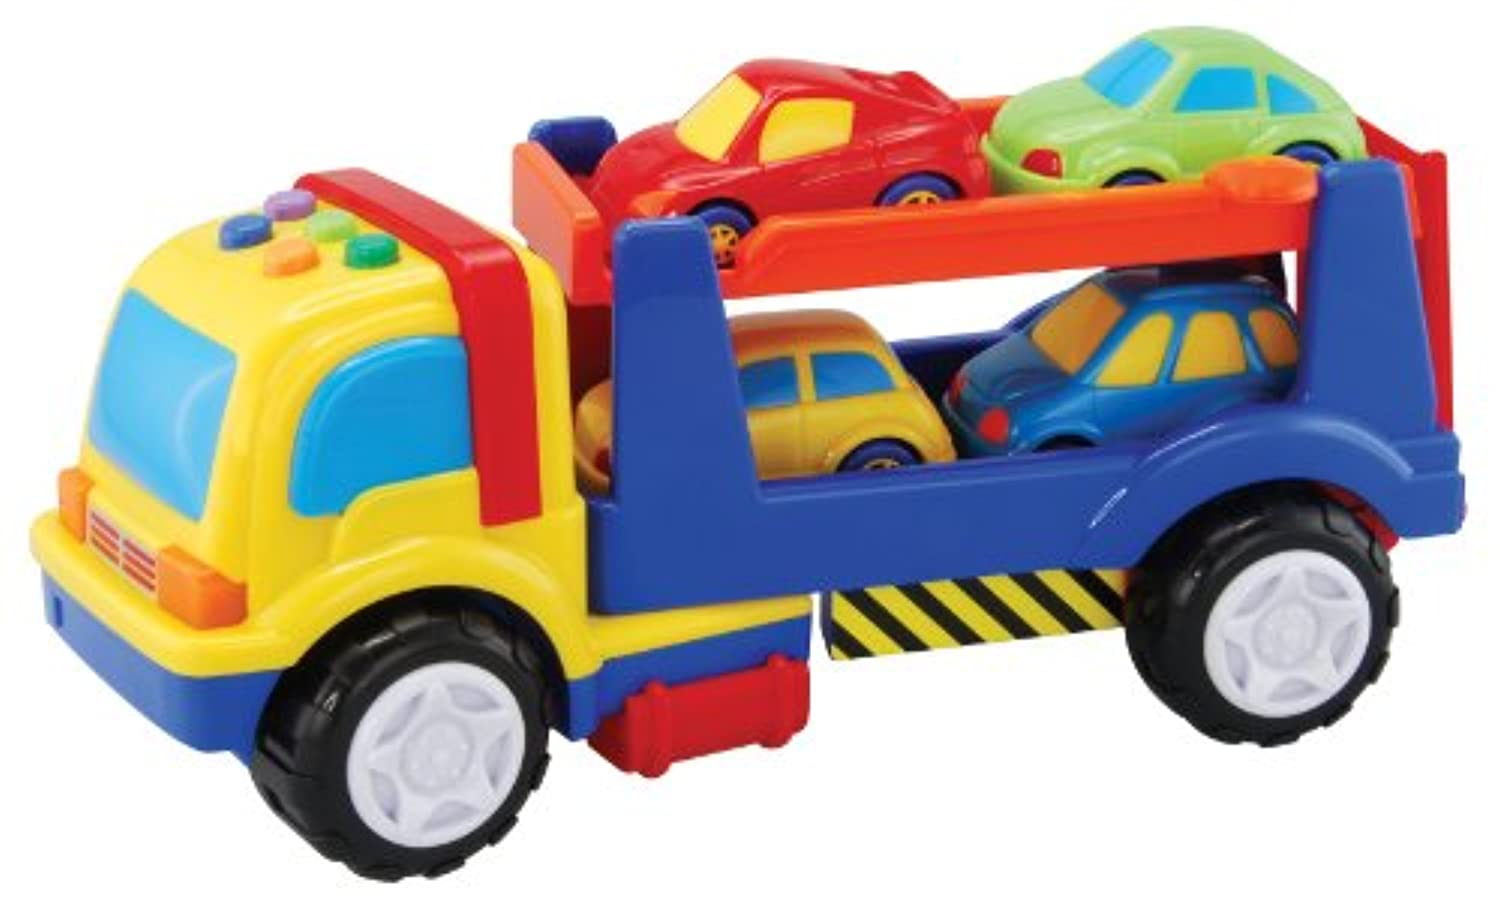 Megcos 1273 Plastic Auto Trailer with Lights Sounds and 4 Little Cars